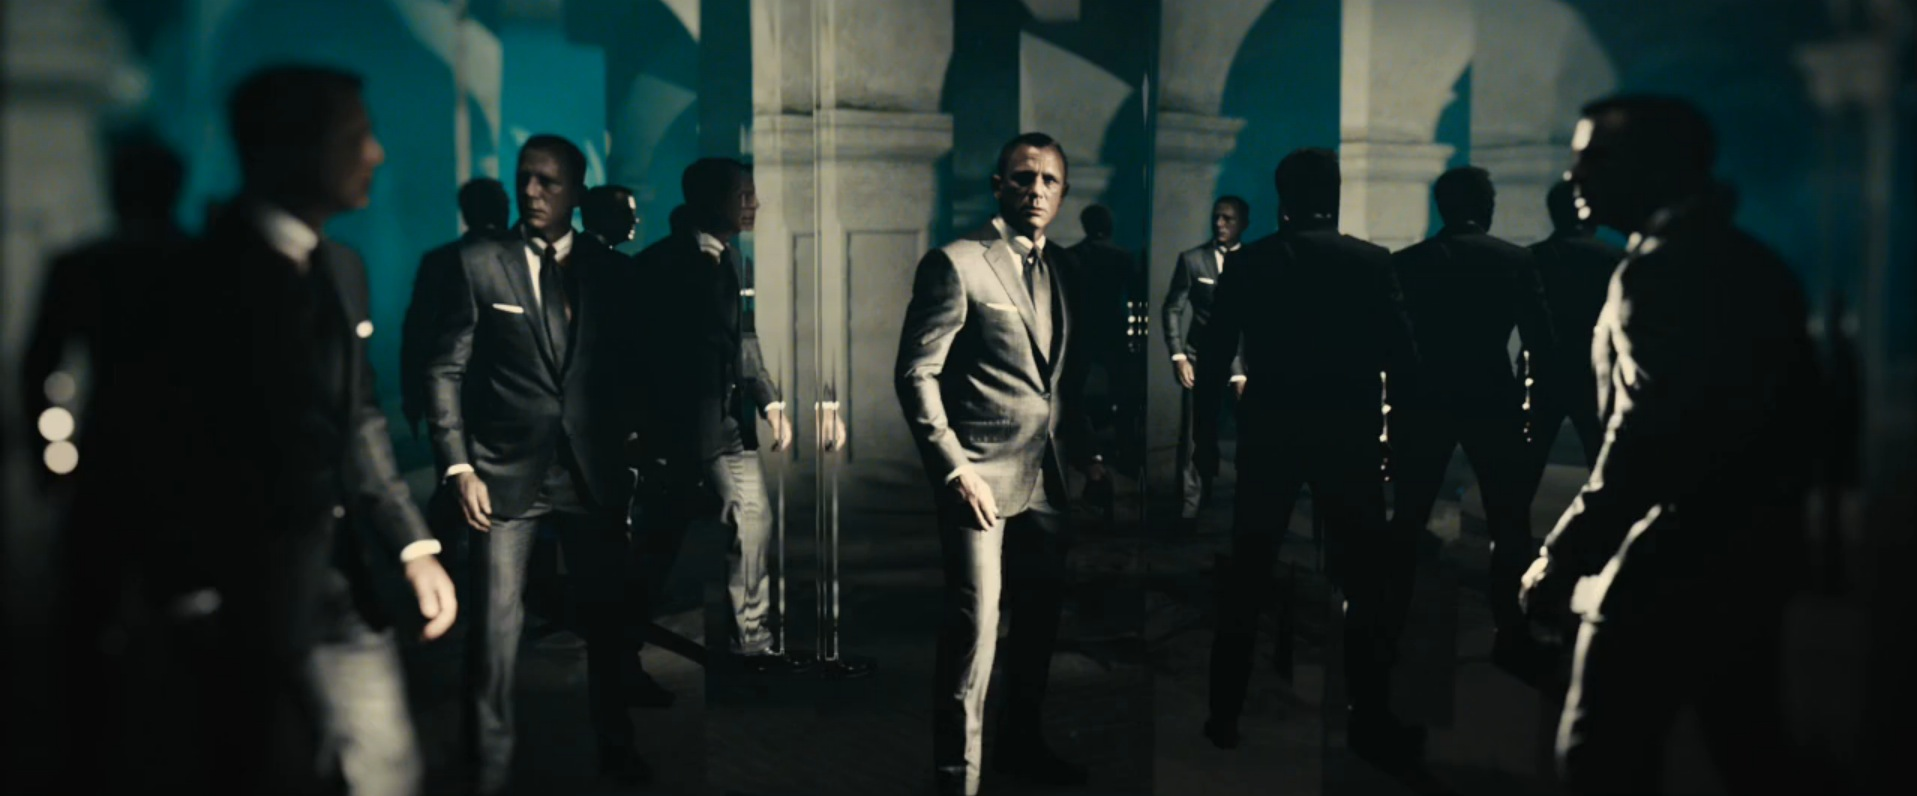 Skyfall full movie hd download 2015 movies